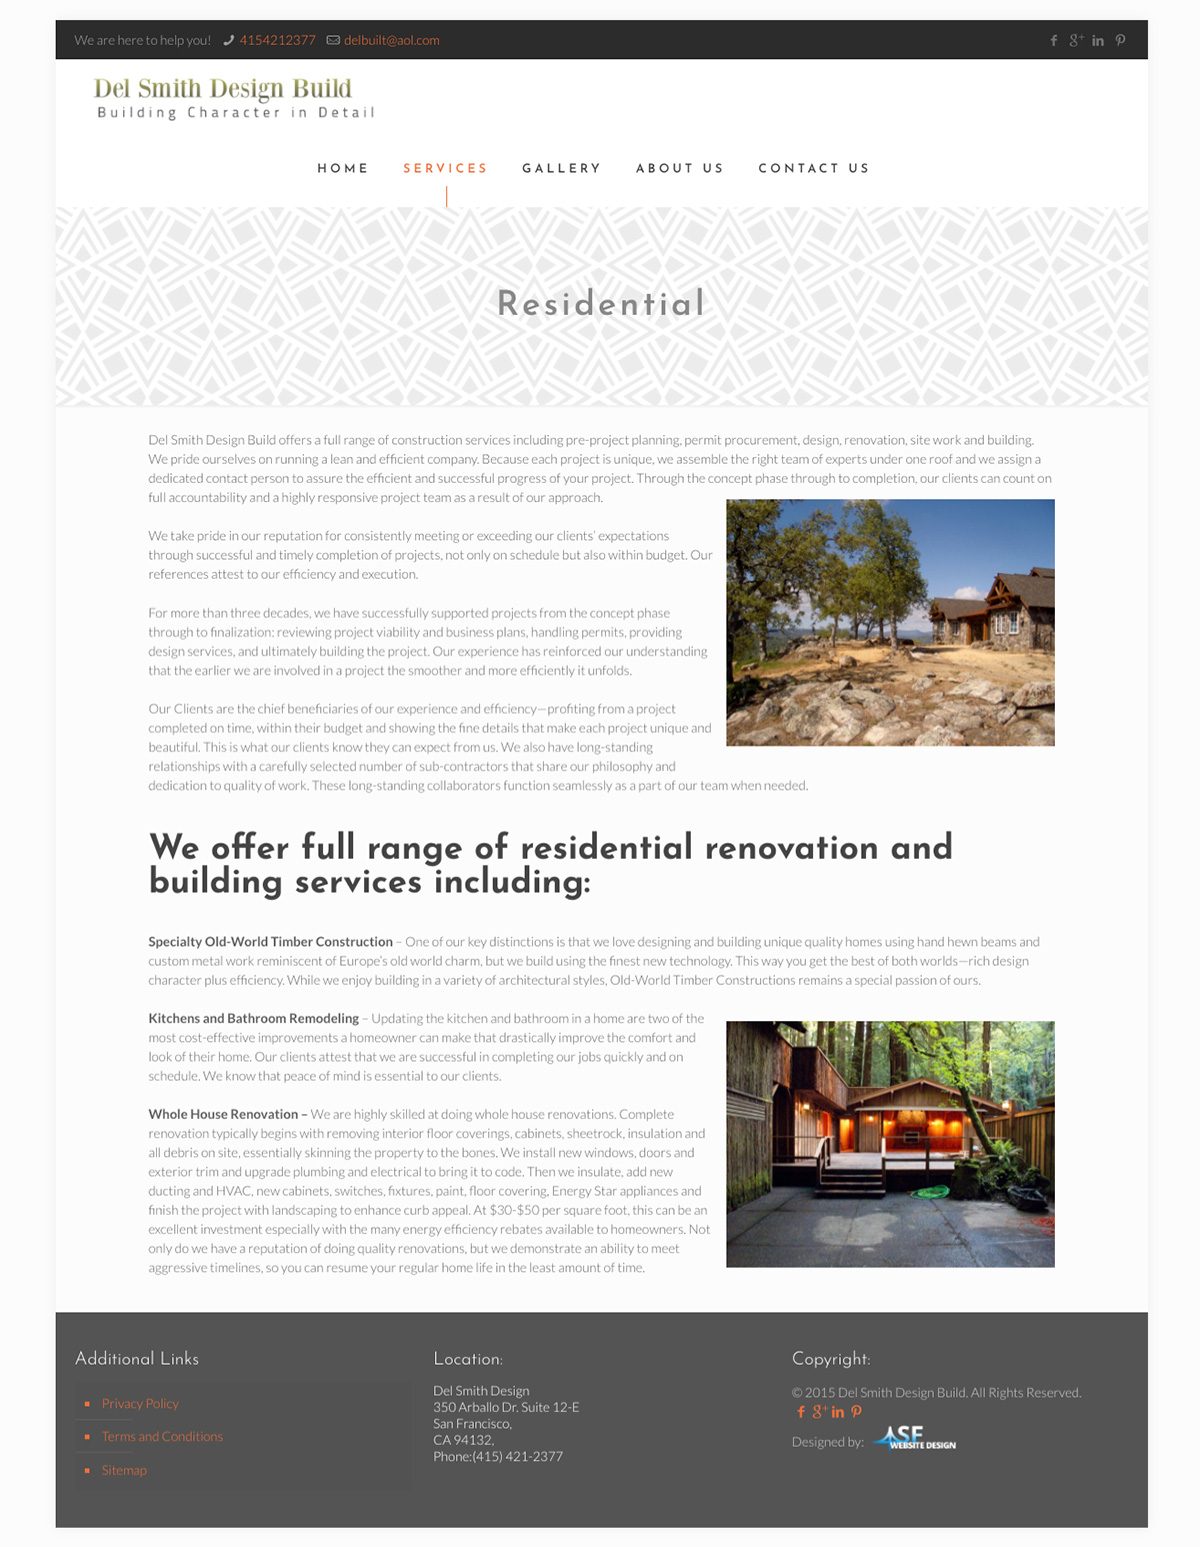 Del Smith Design Build builder contracting web design